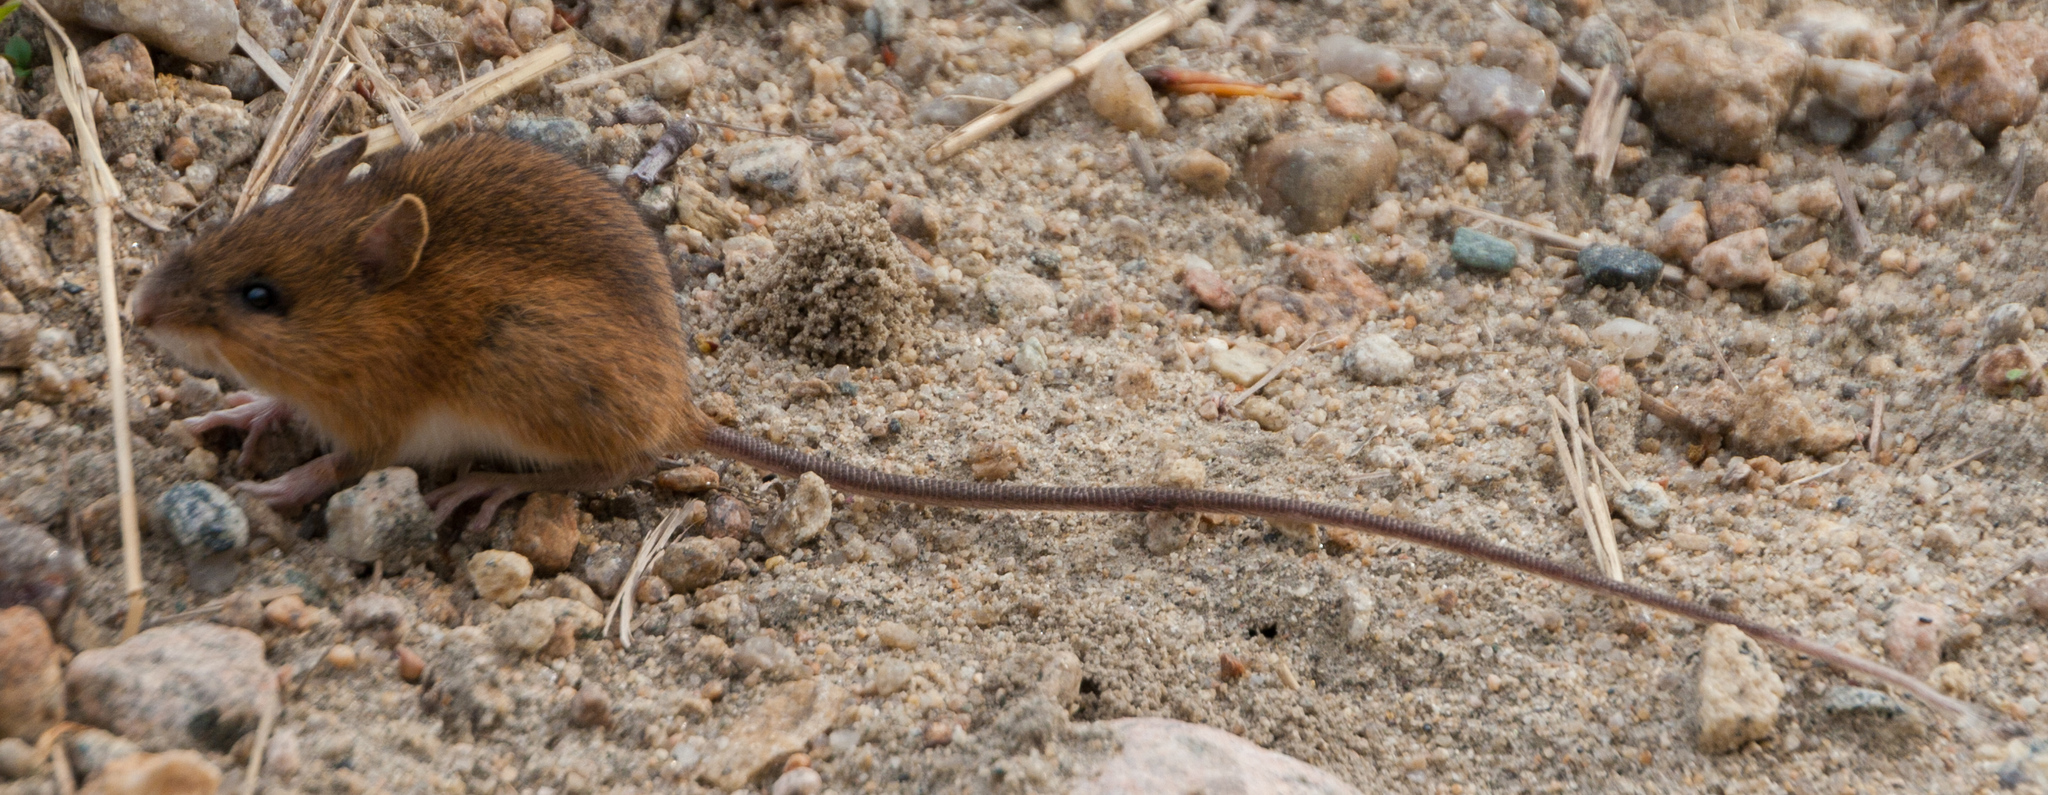 Image of Woodland Jumping Mouse